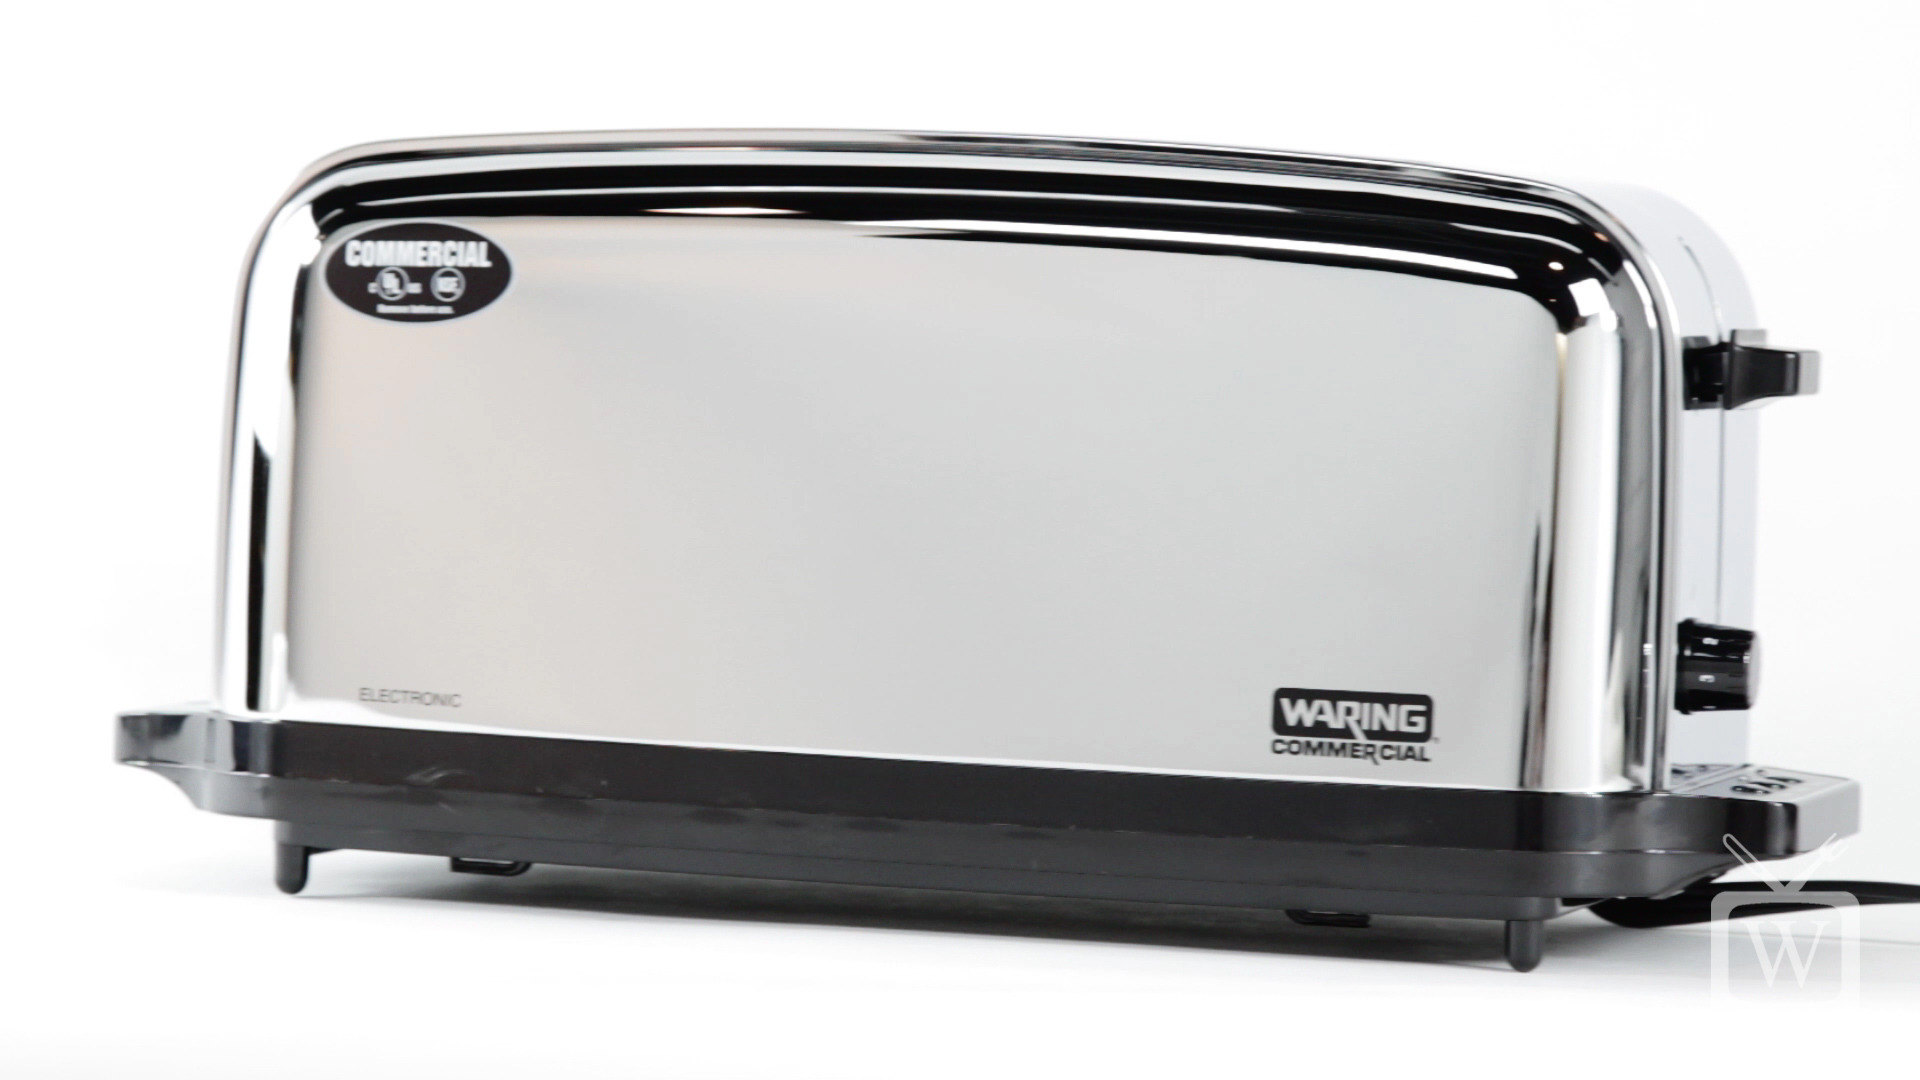 the waring best look touch lift toaster world slice in and breville oven